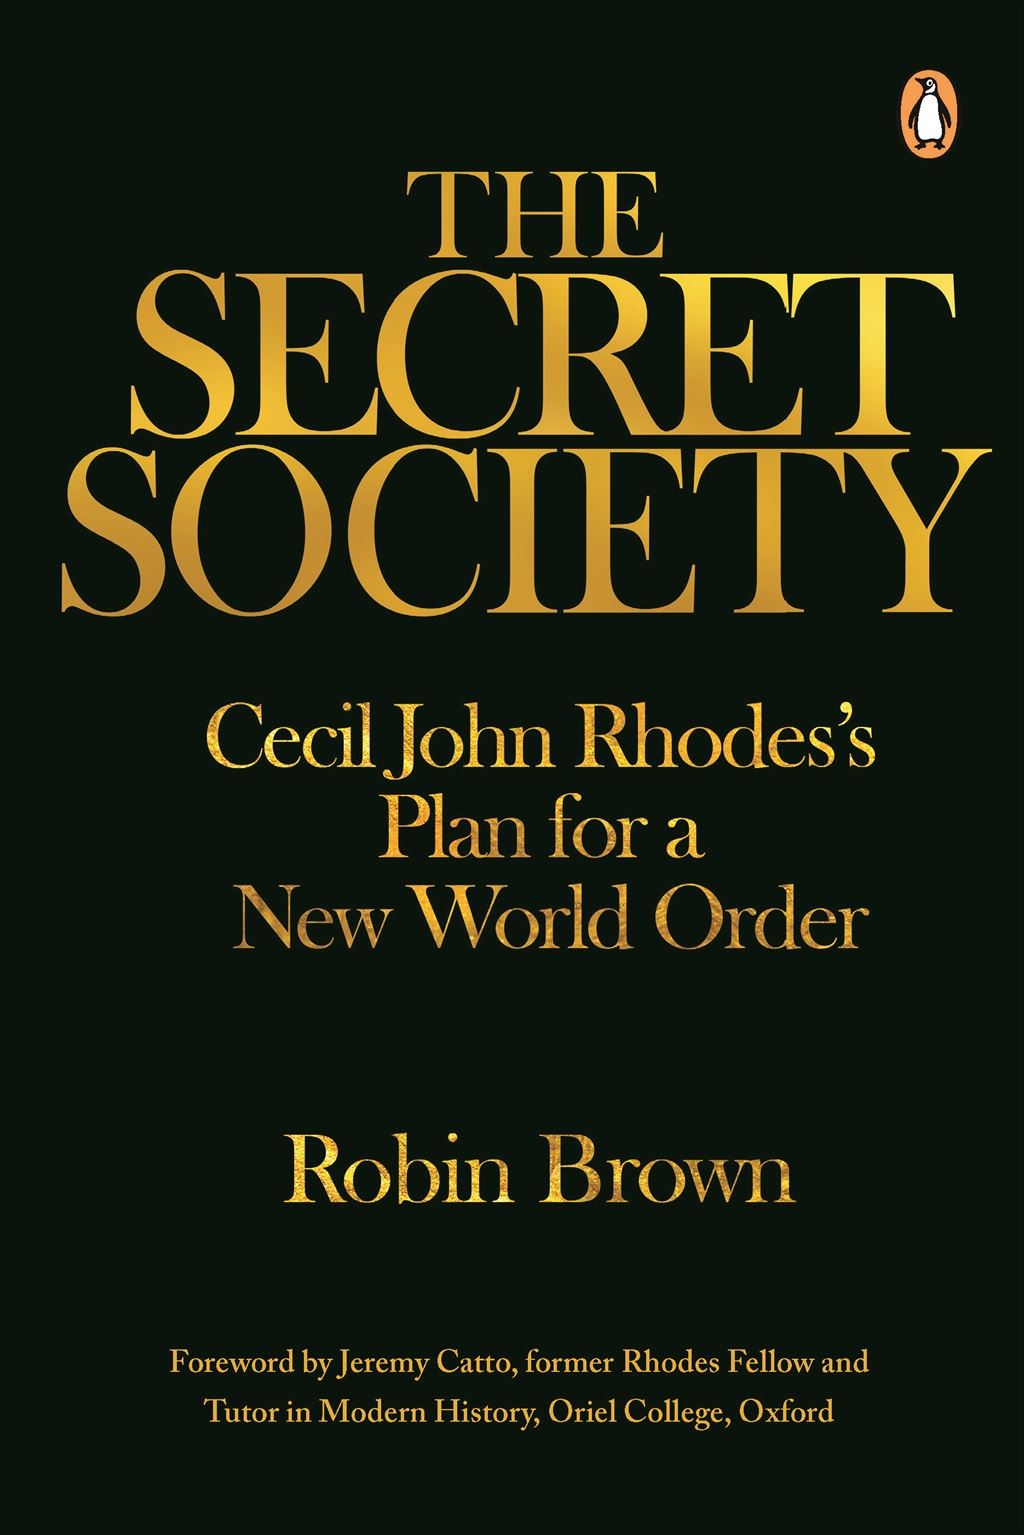 No secreTS The book examines historical claims about Rhodes's relationships with men